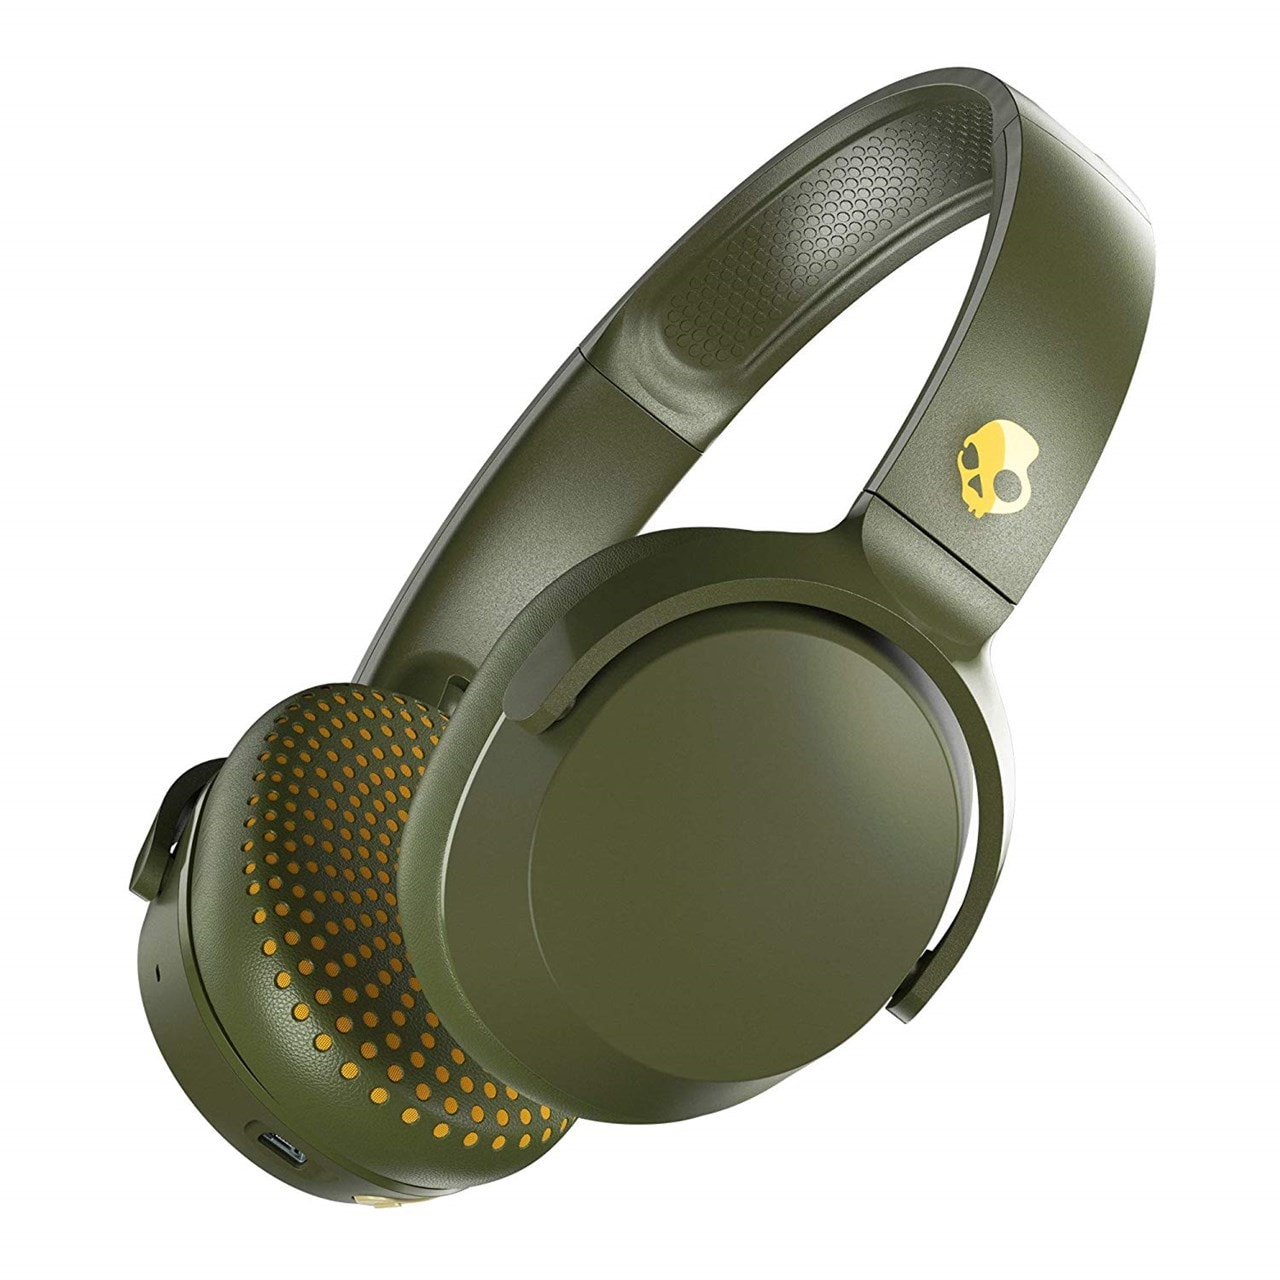 Skullcandy Riff Moss/Olive/Yellow Headphones - 1